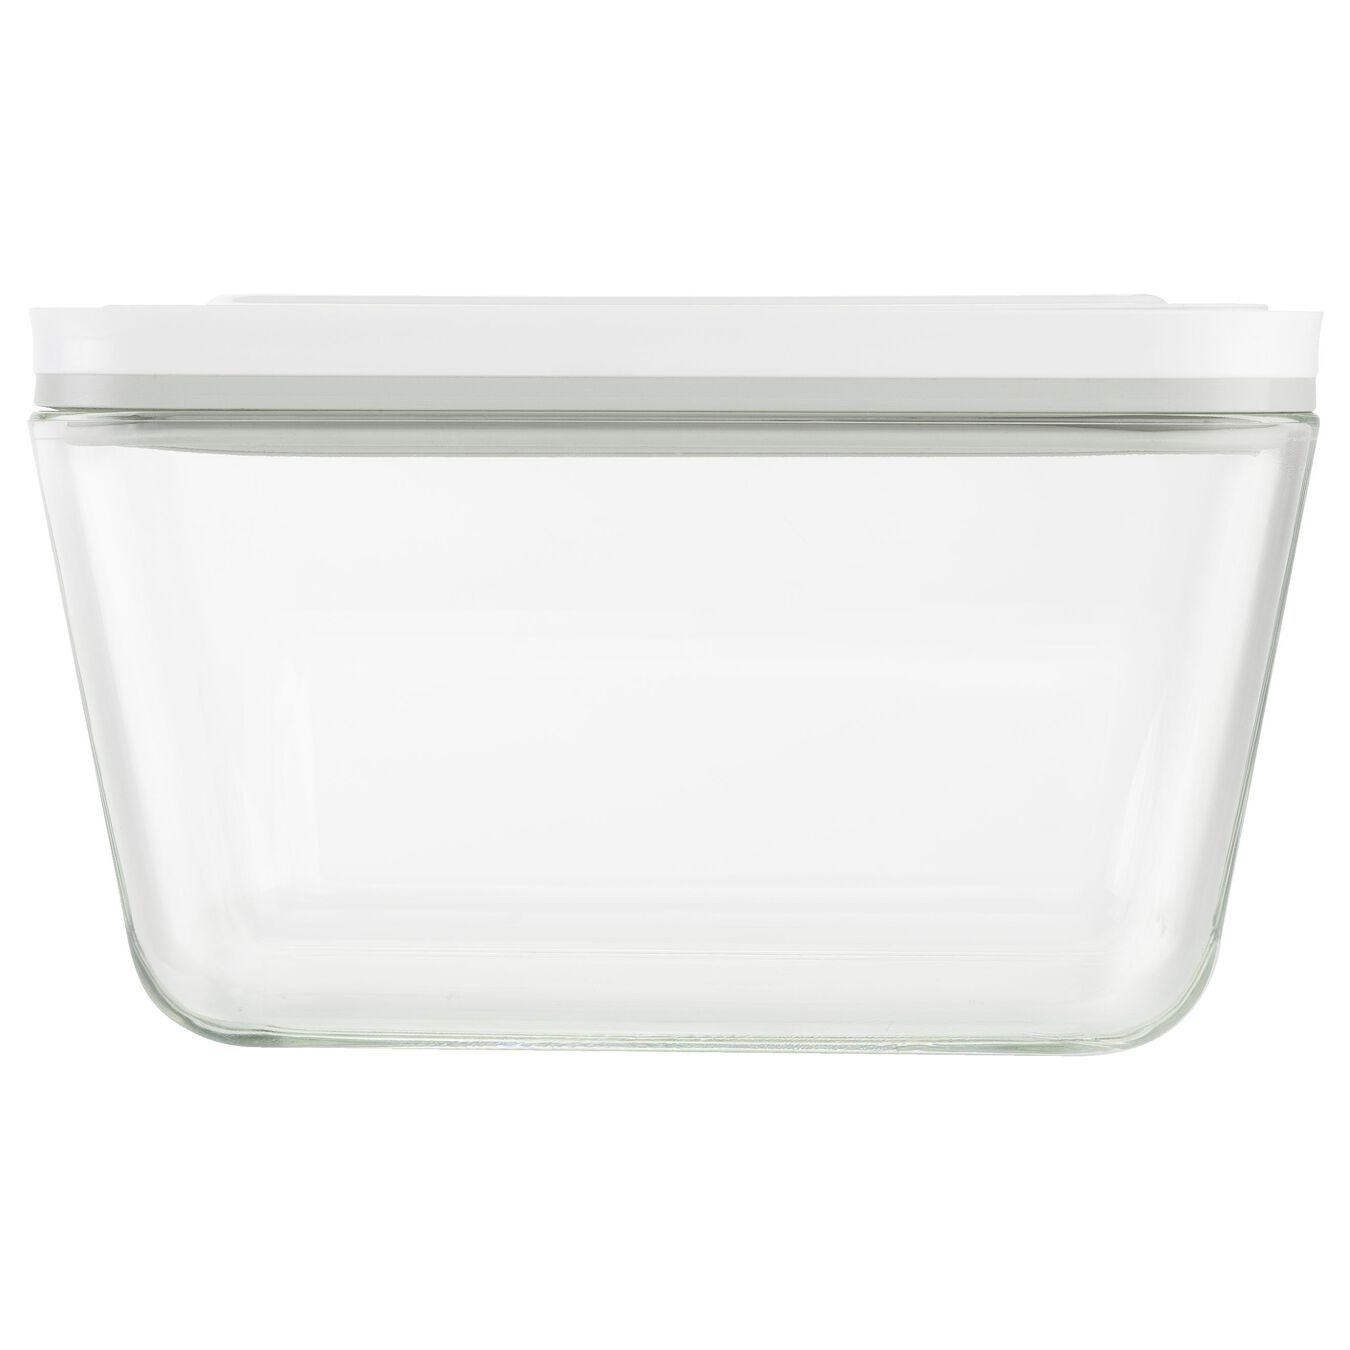 large Vacuum Container, glass, grey,,large 3